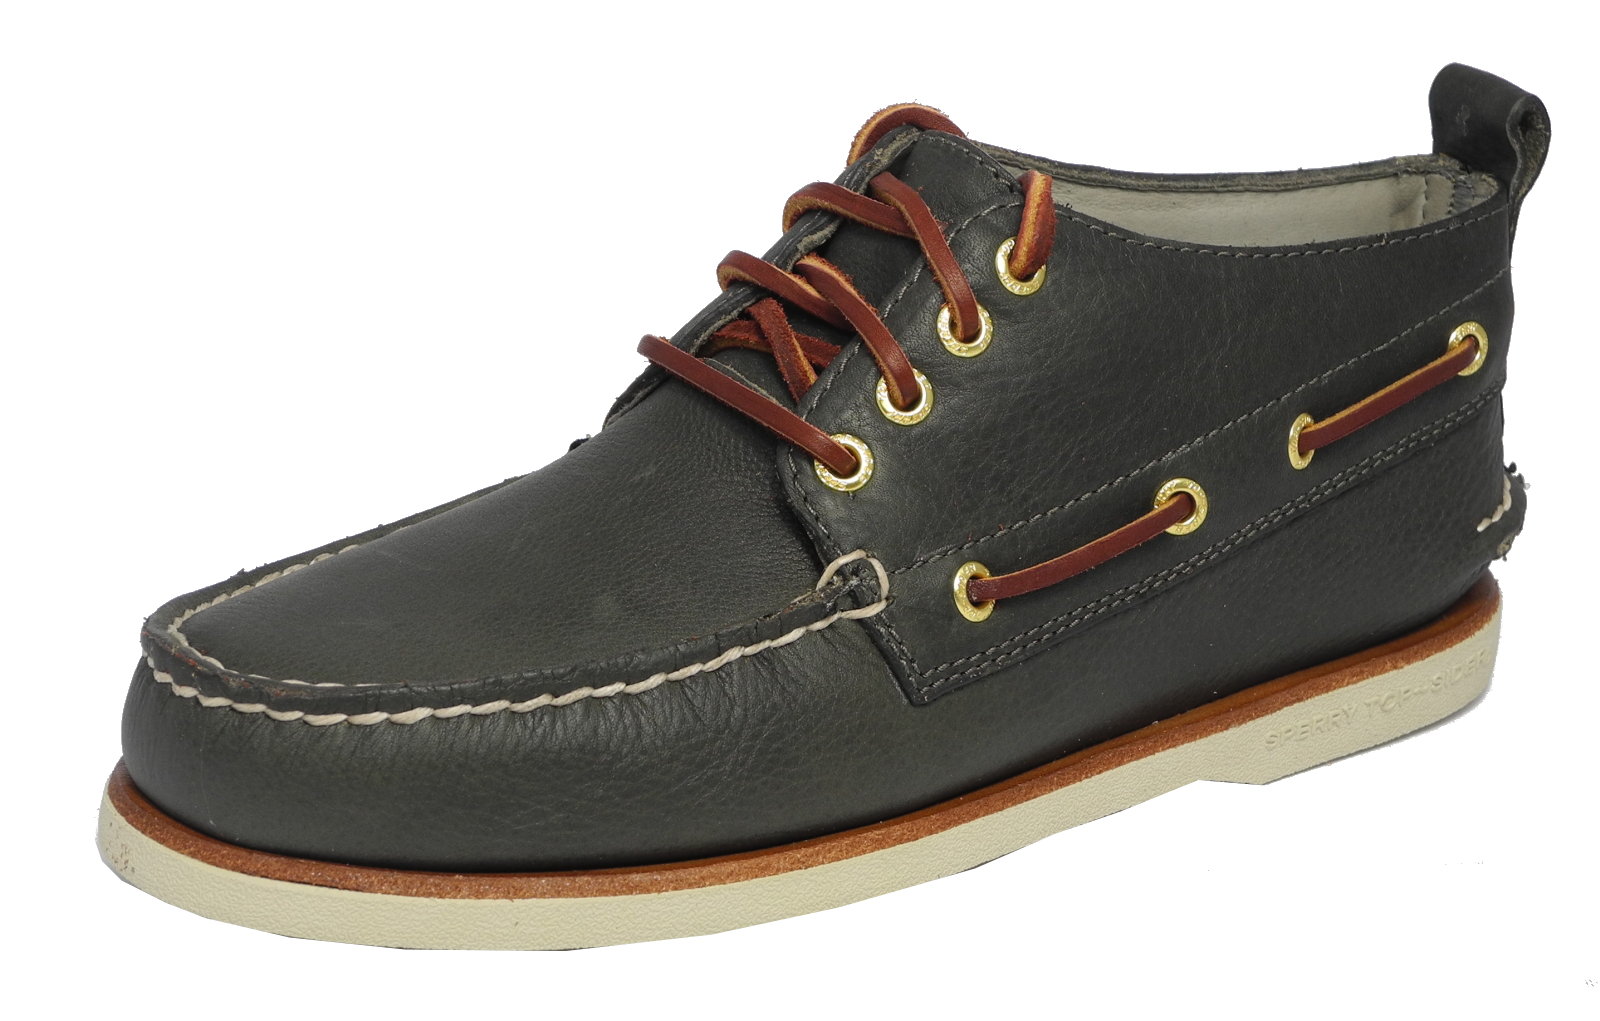 Mens Sperry Top-Sider Memory Foam Boat Deck Chukka Shoes Grey SIZE ...